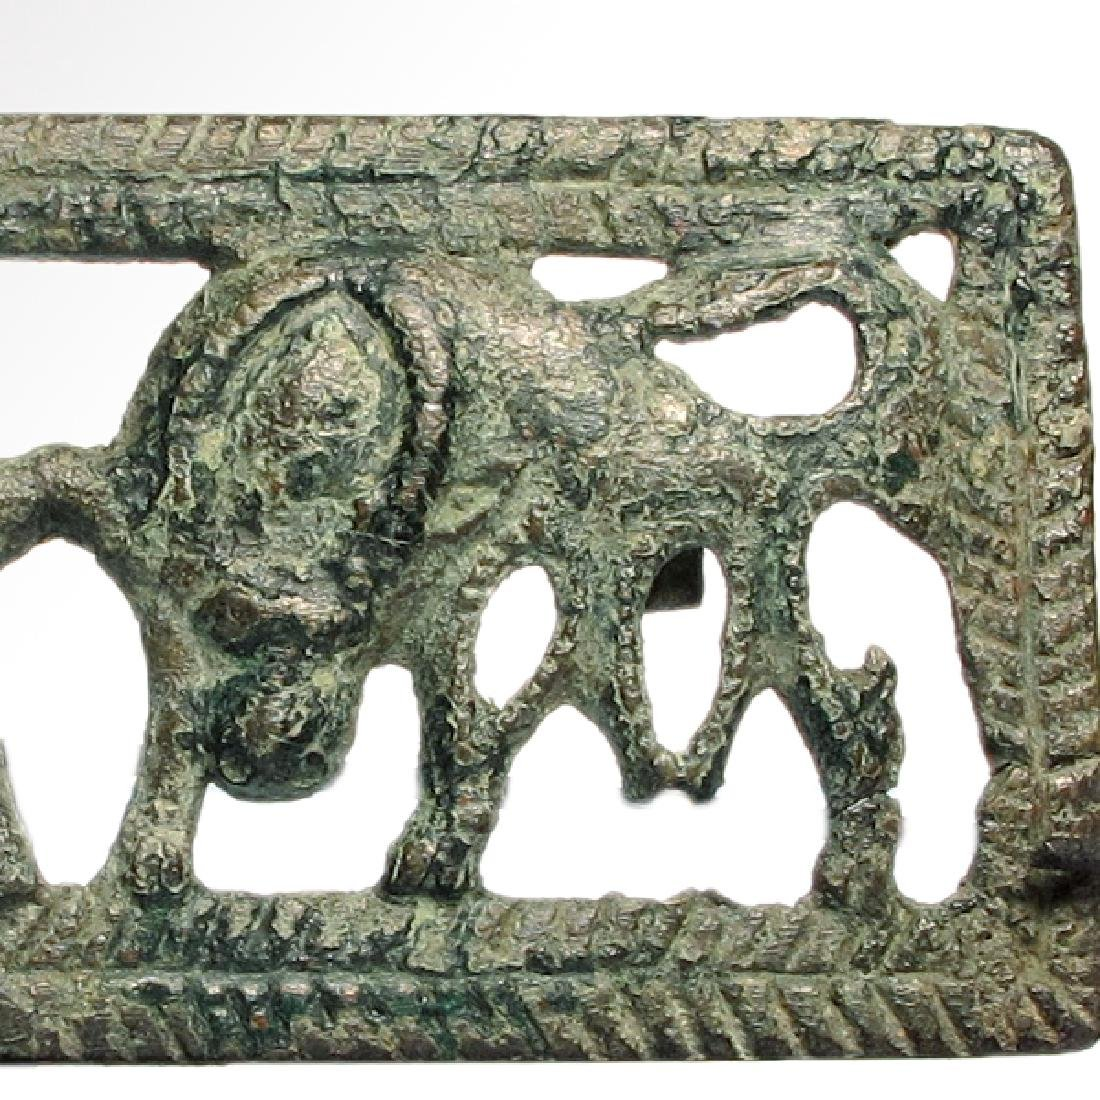 Ordos Open-Work Plaque with Grazing Bulls, c. 500 B.C. - 4